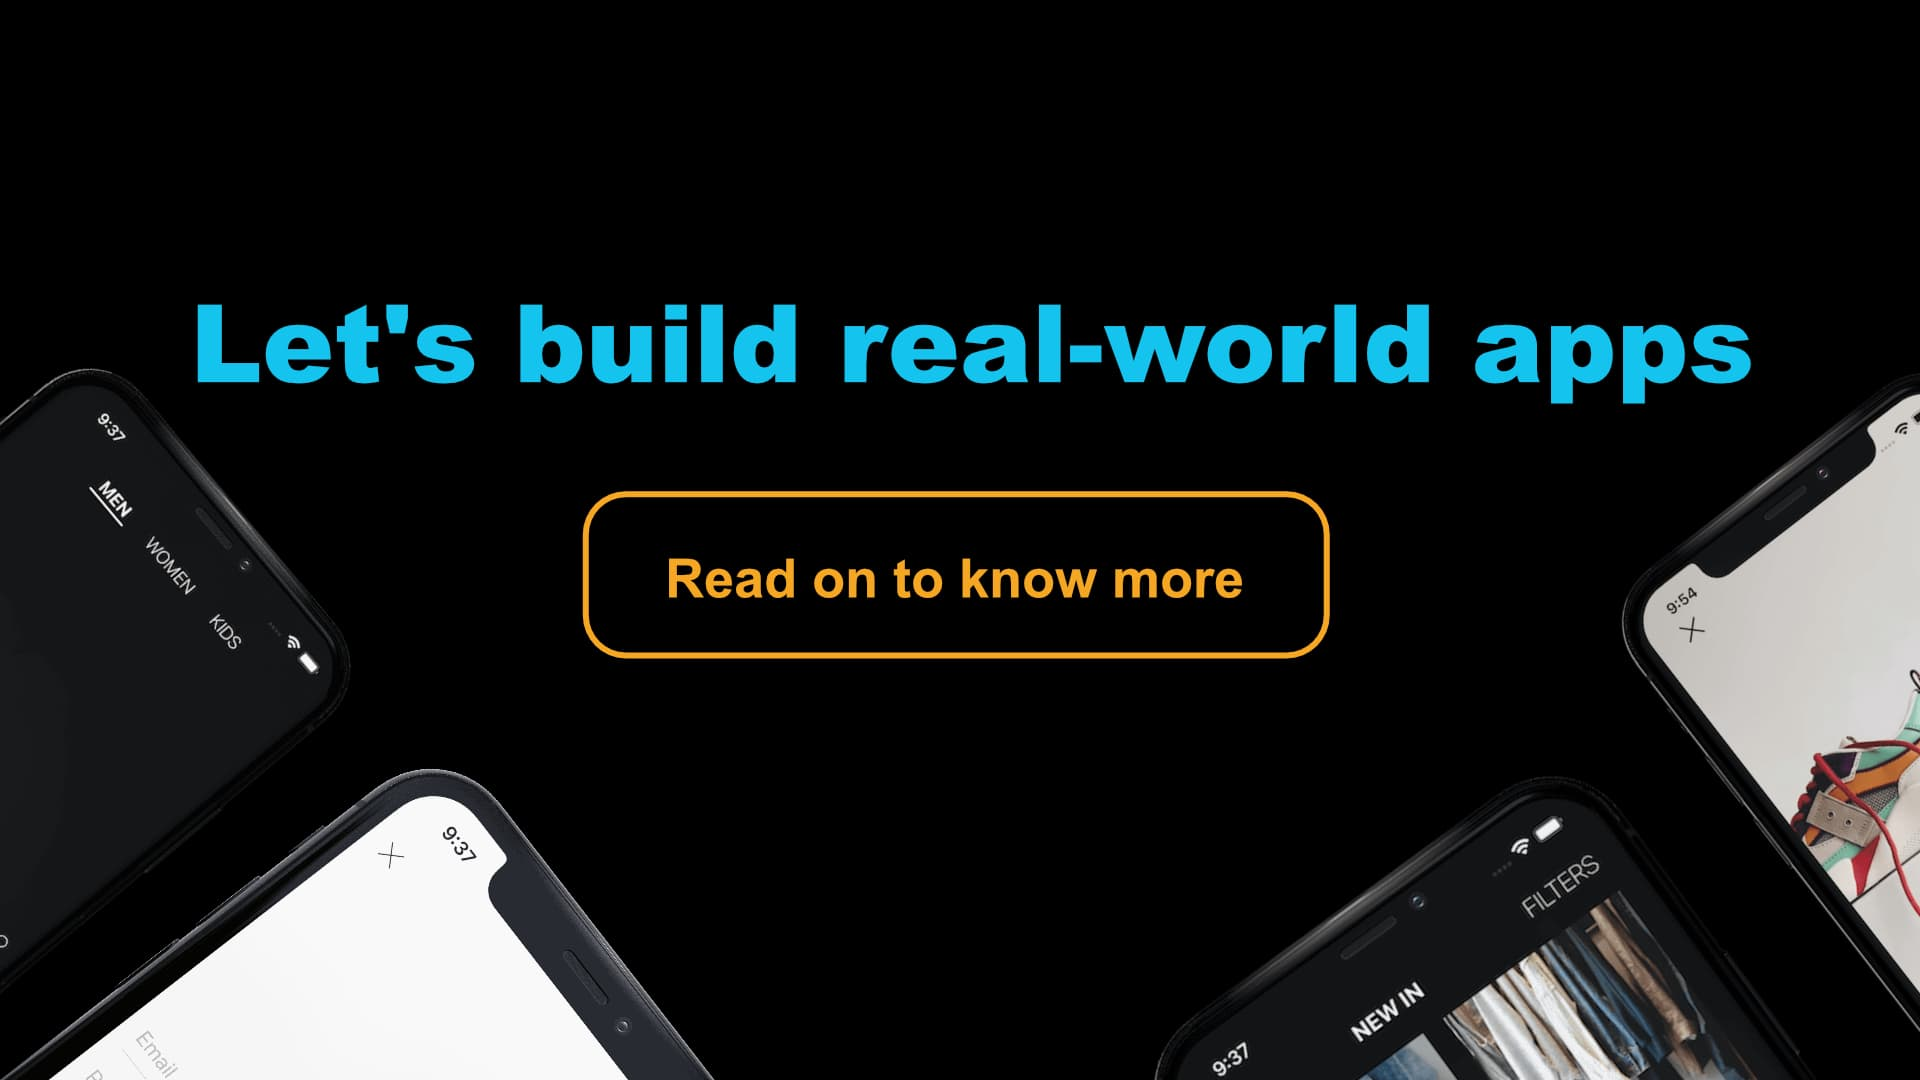 Let's build real-world apps